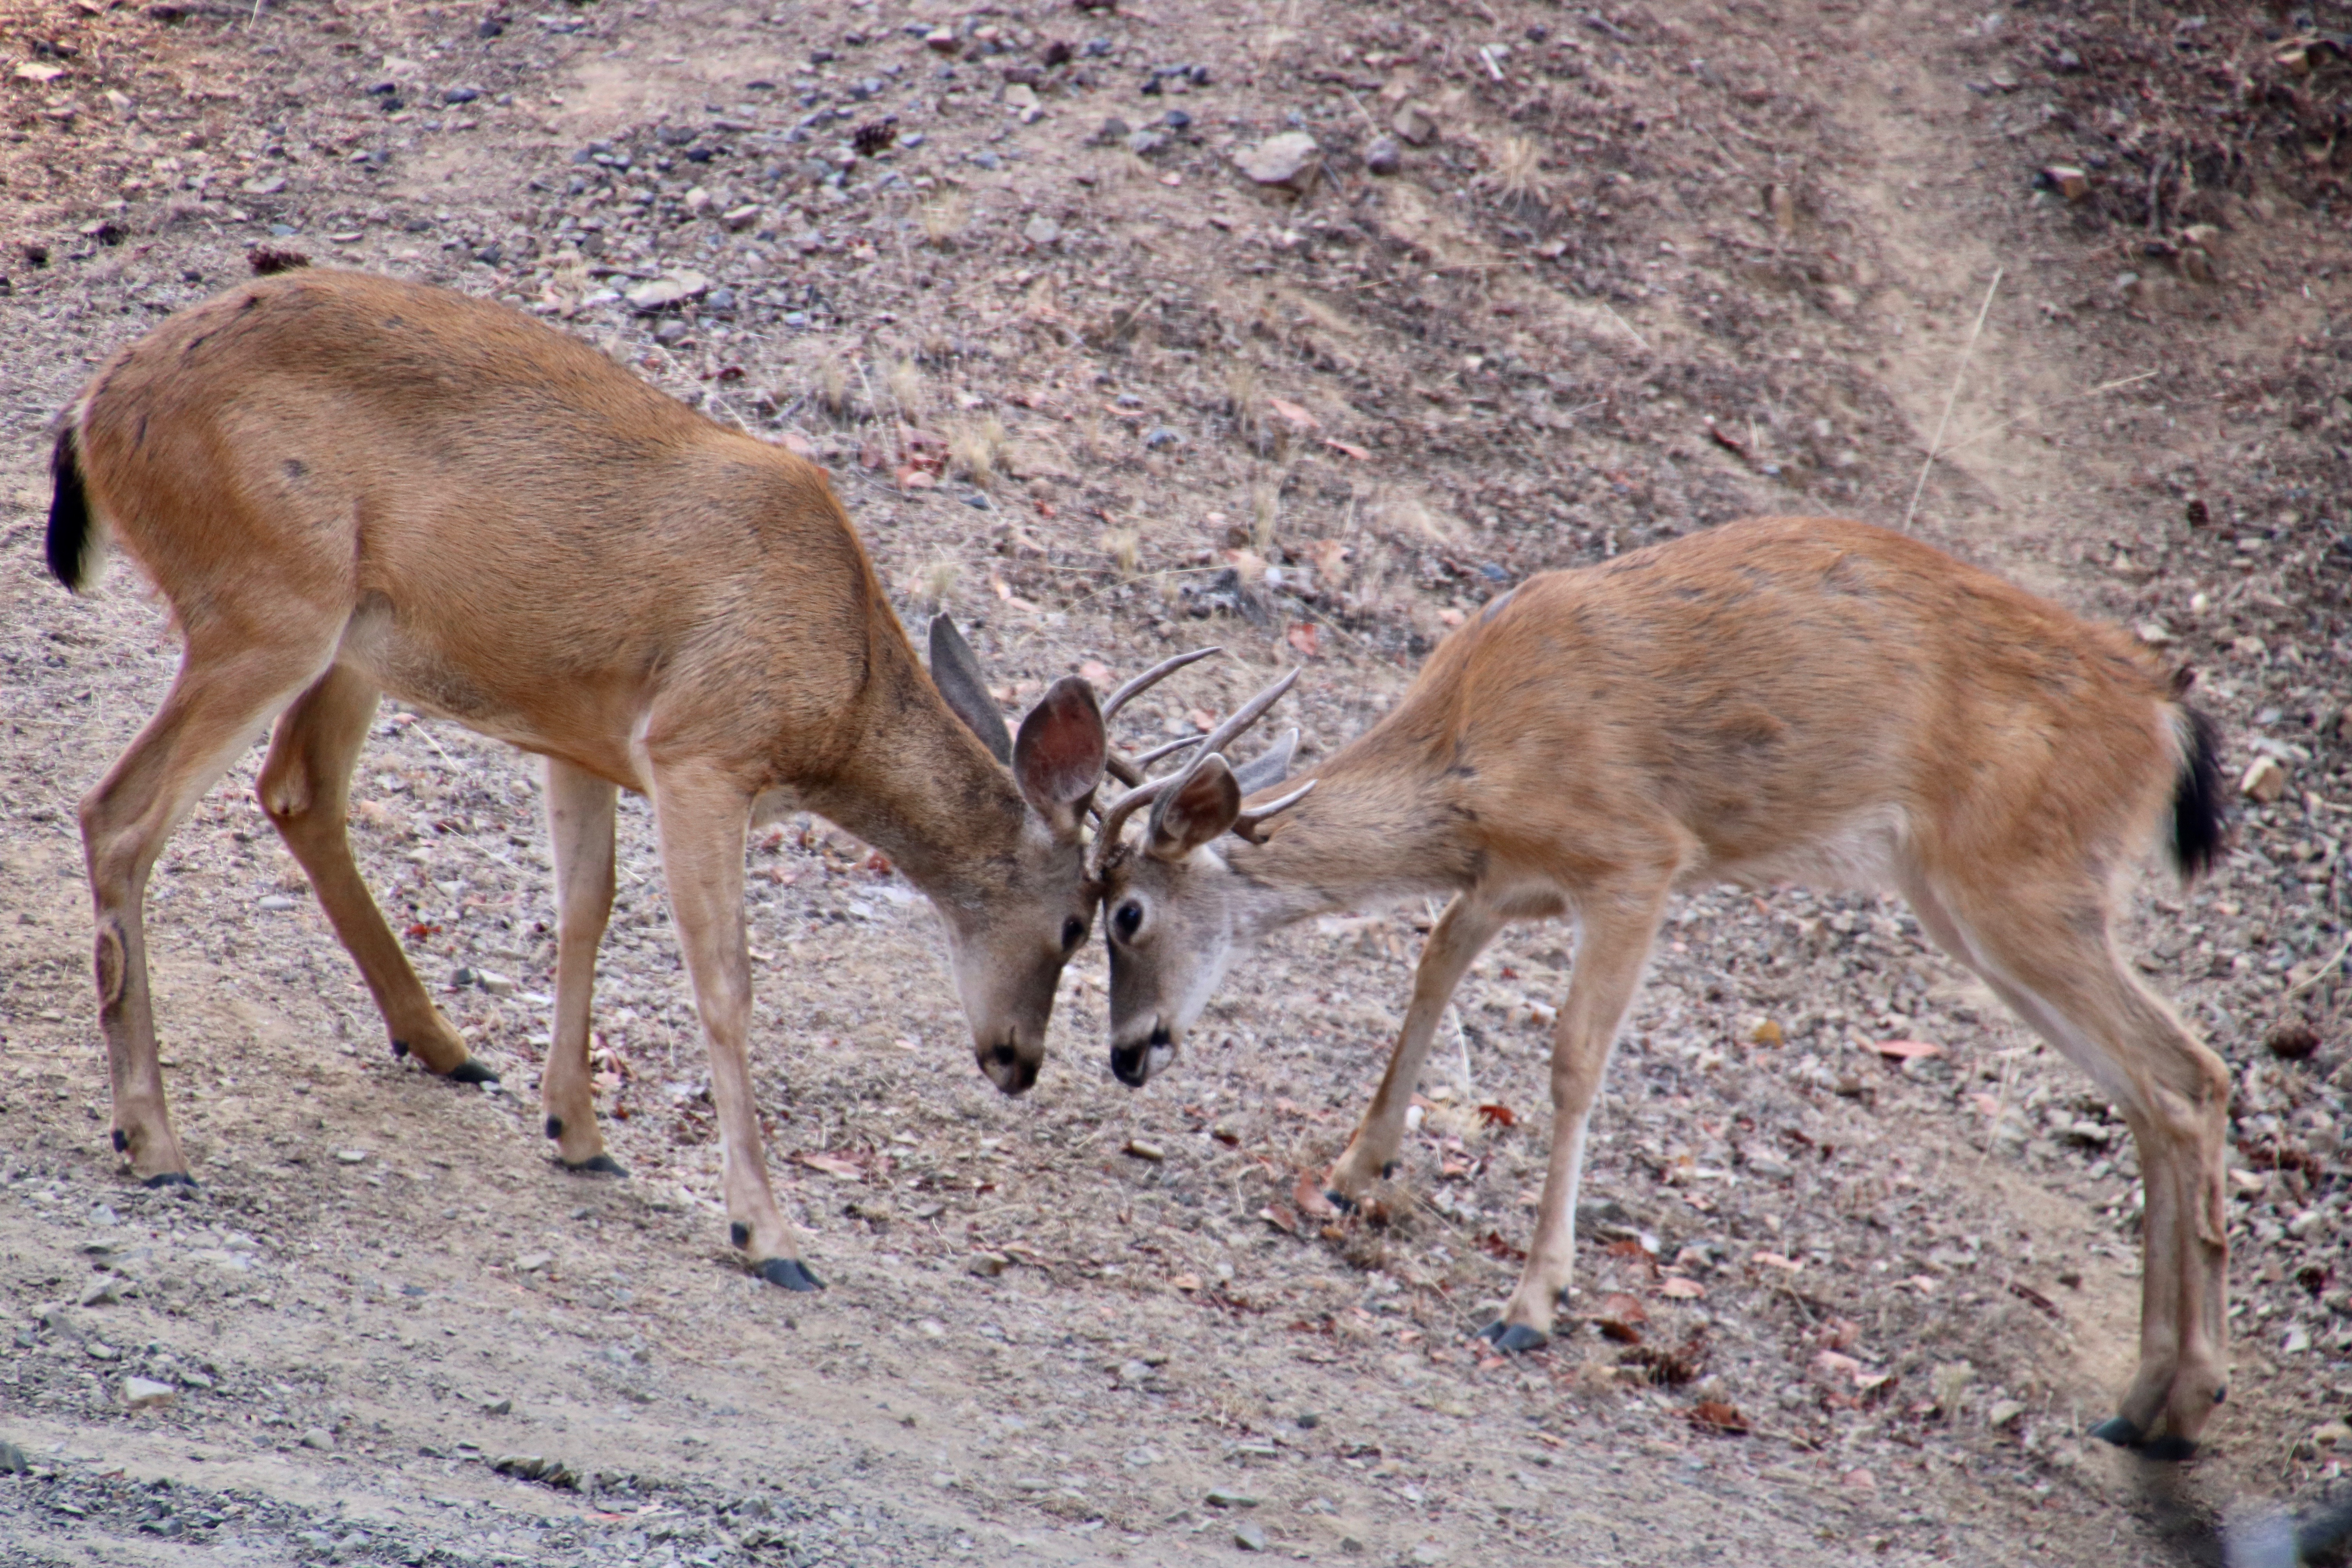 Bucks in Southern Oregon go at it with their antlers in preparation for mating season. Photo by Curtis Mekemson.